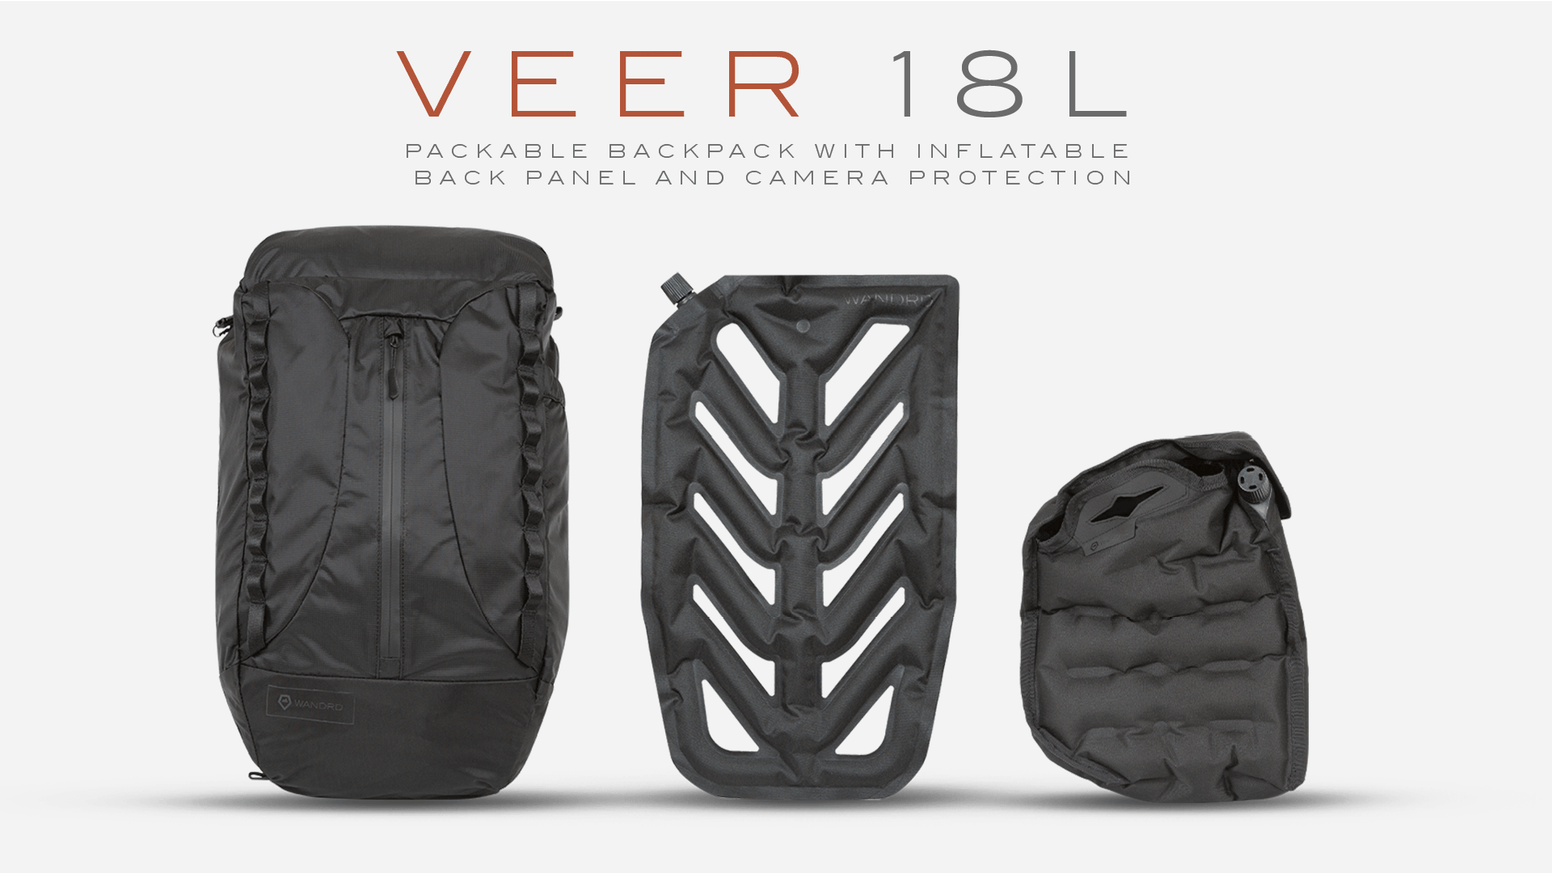 For photographers or travelers — The first packable backpack with inflatable back panel and inflatable camera protection. Missed our campaign! Order now through the link below.